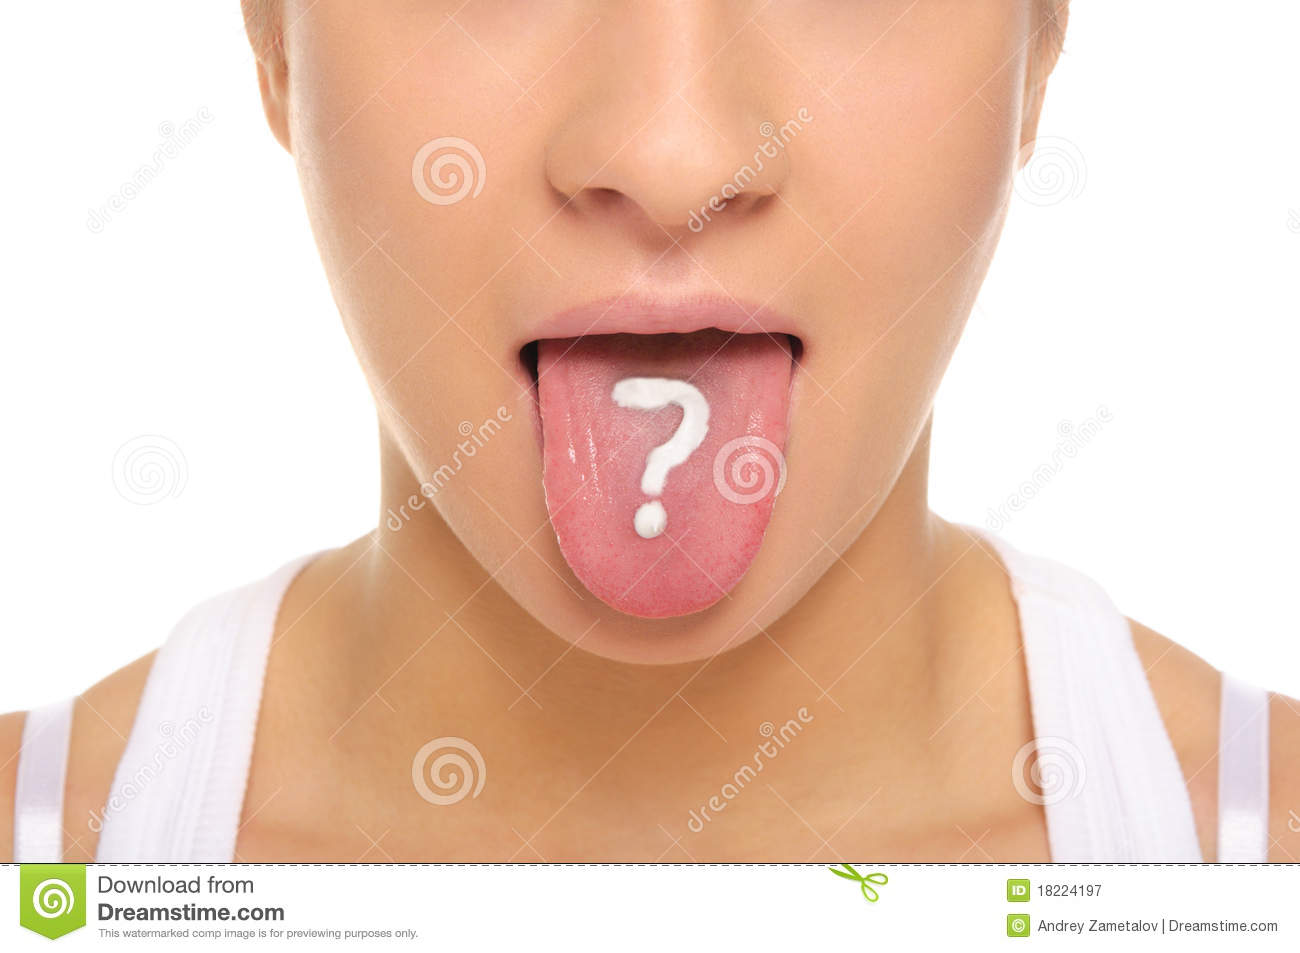 Woman puts out tongue with drawn question mark